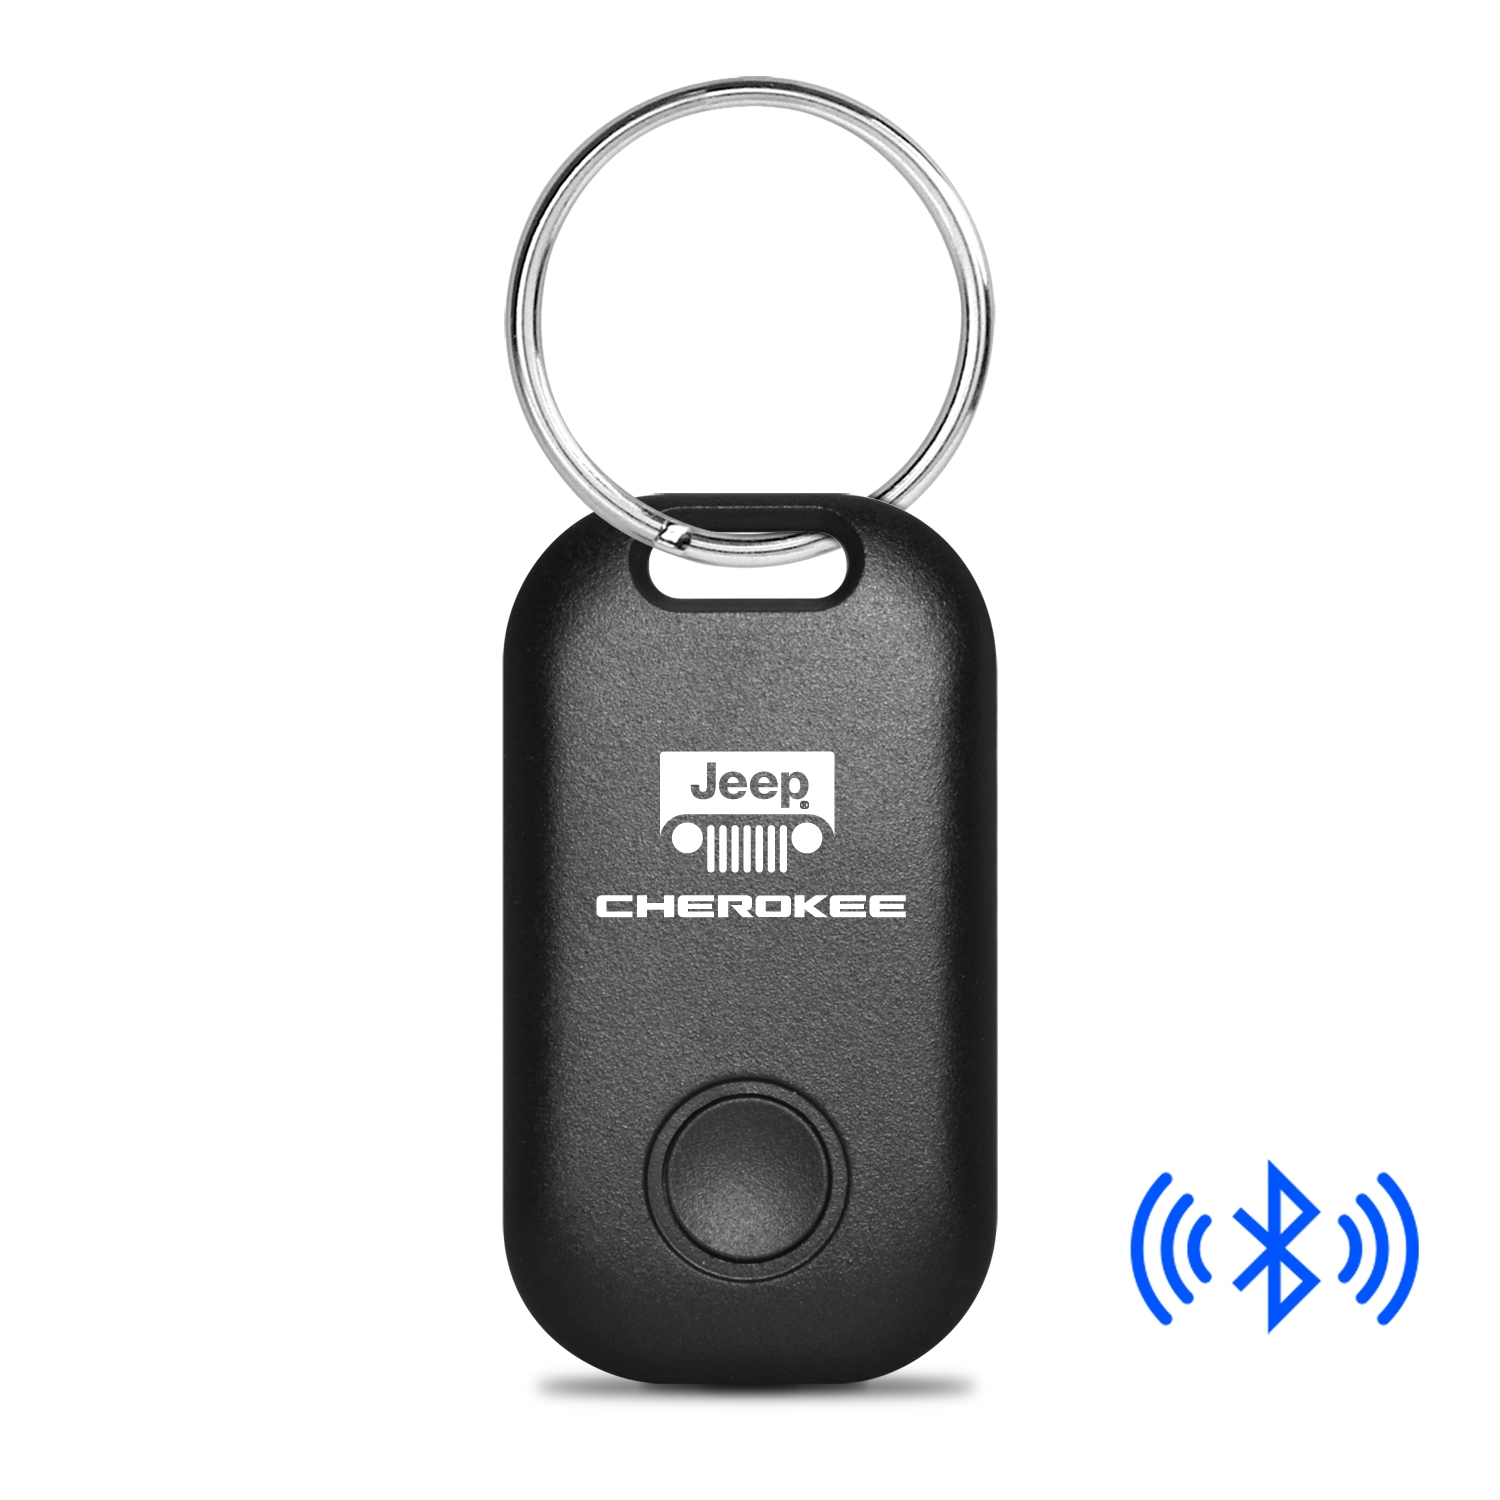 Jeep Cherokee Bluetooth Smart Key Finder Black Key Chain